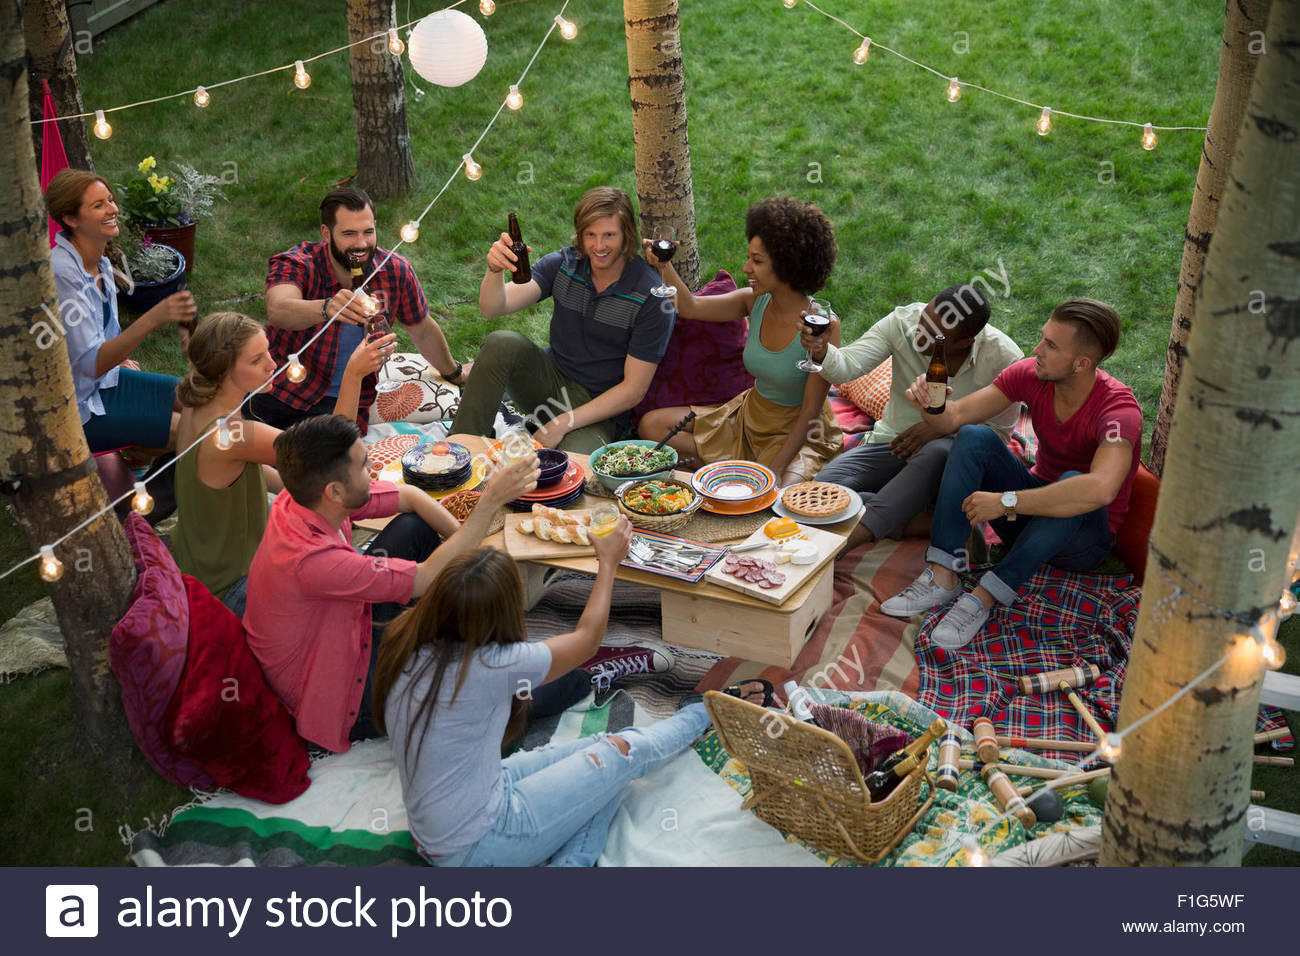 Friends toasting drinks at backyard dinner party - Stock Image